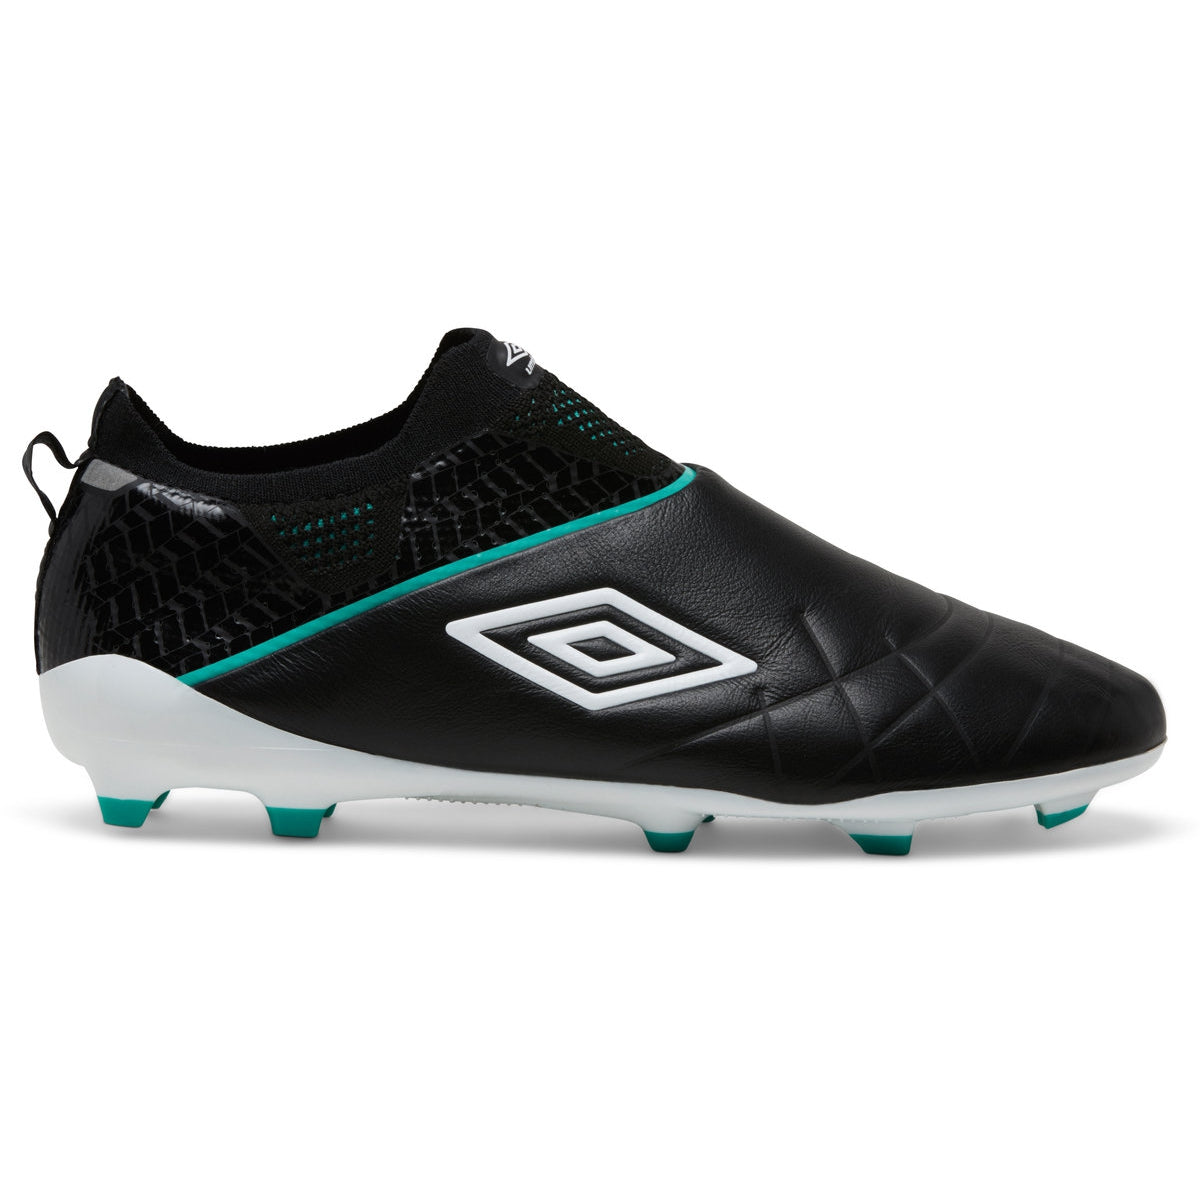 Umbro Medusae Elite HG in Black with White Umbro logo and Marine Green detailing